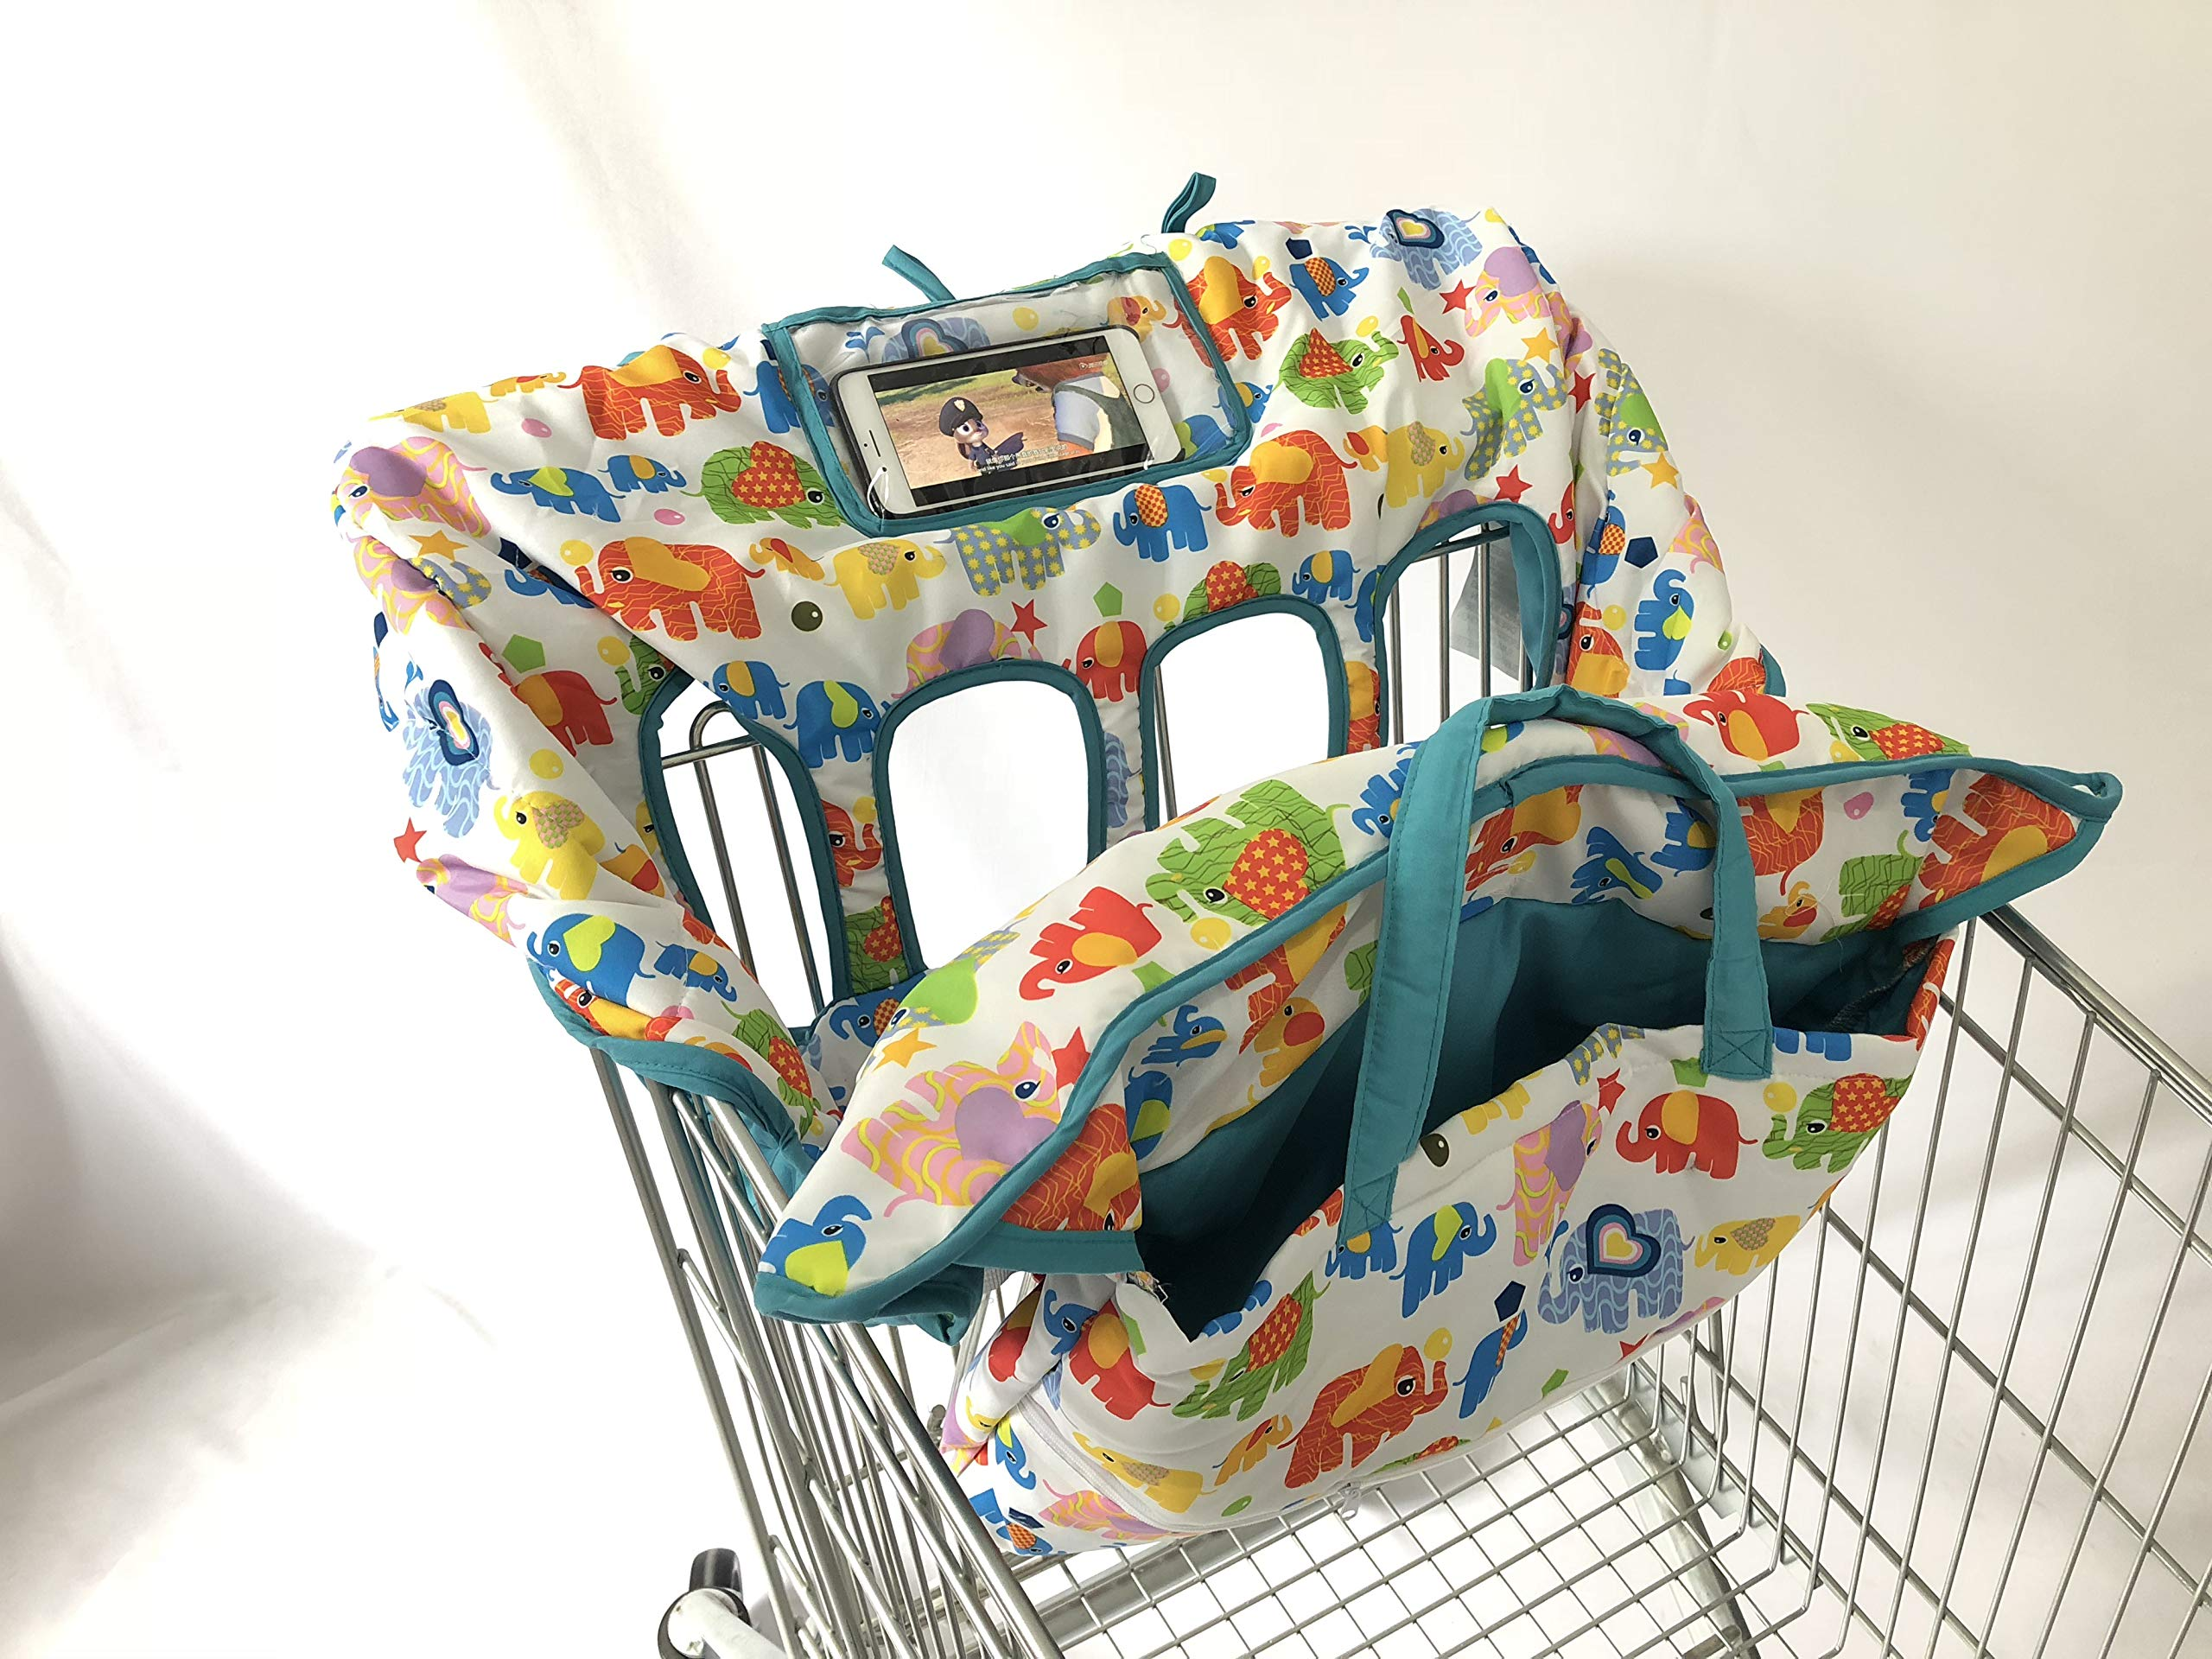 4 Legs Holes Double Babies Shopping Cart Cover for Twin or Baby Siblings. X-Large Size That was Guaranteed to Fit Wholesale Warehouse Grocery Stores (Colorful Elephant)